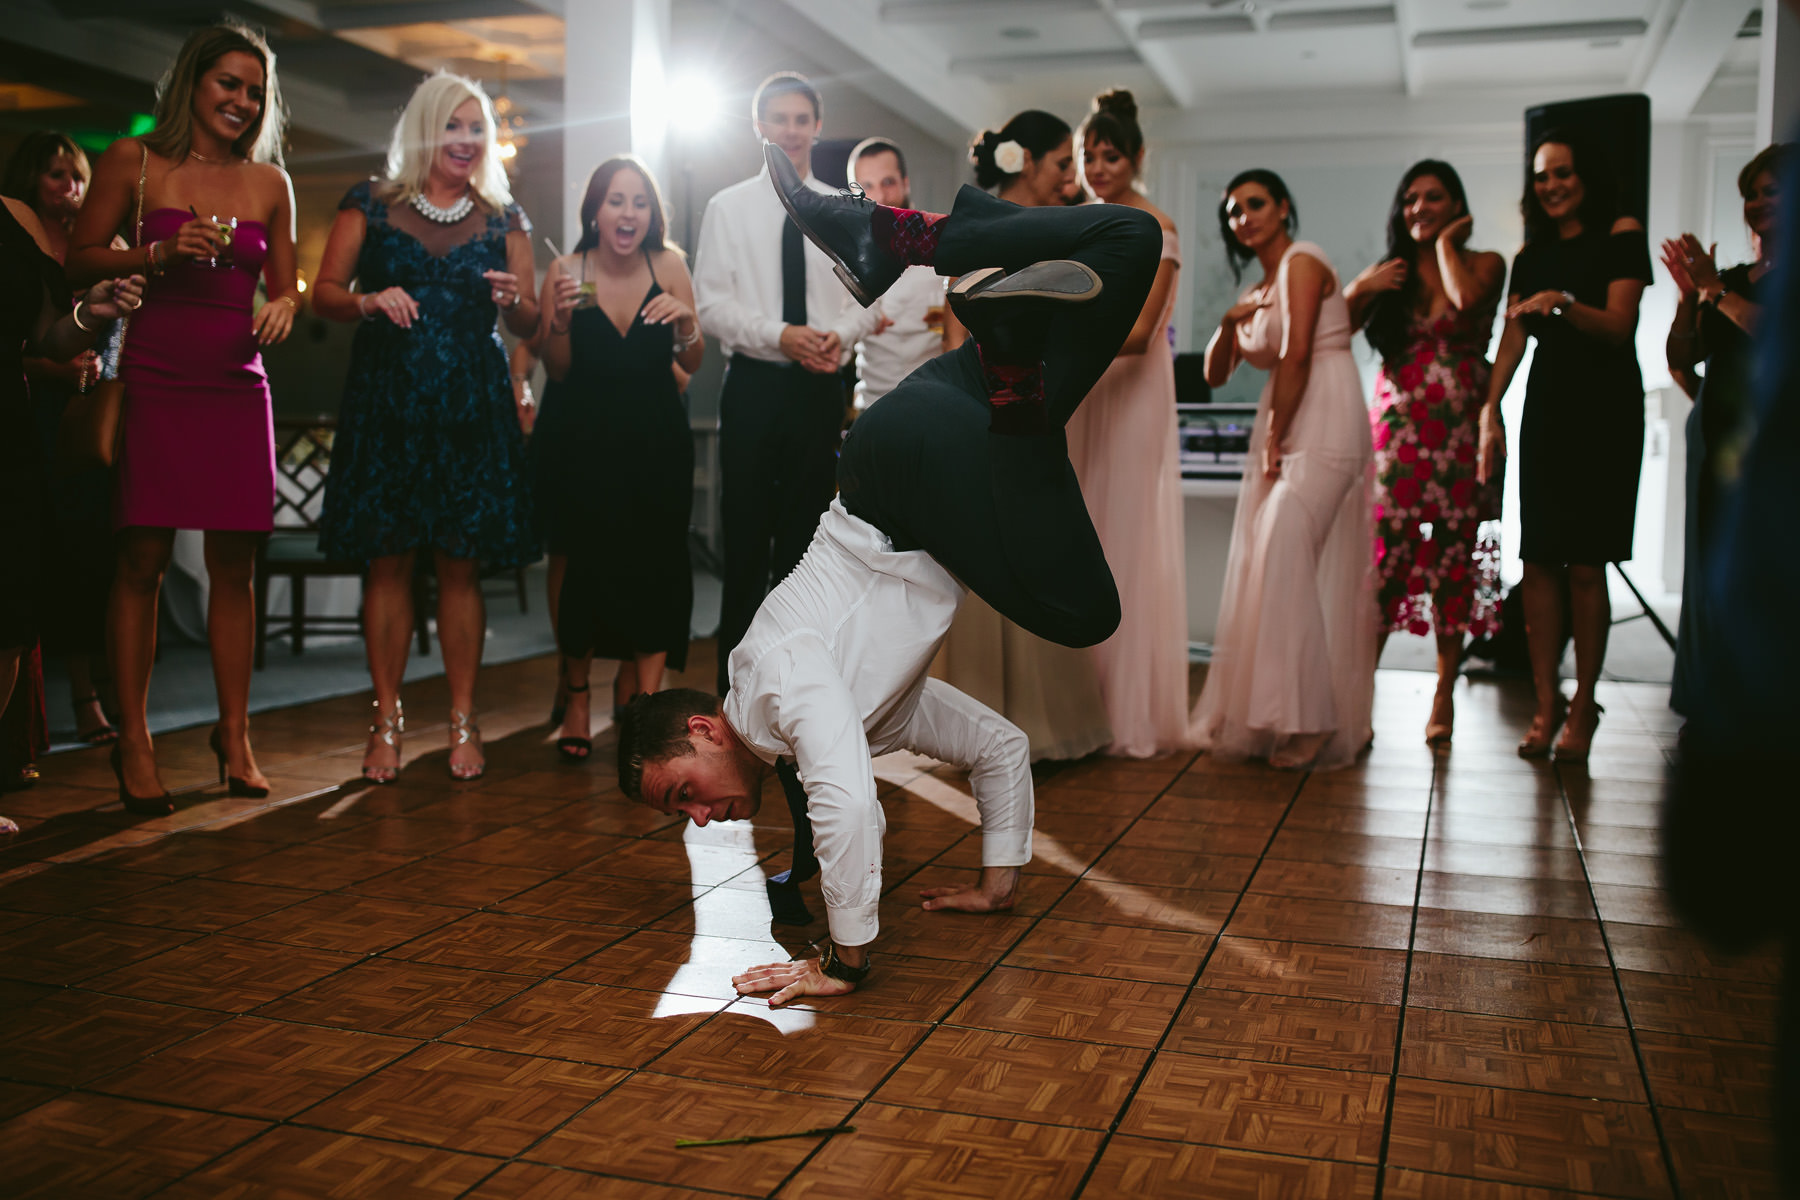 dancing-handstand-moments-miami-photographer-wedding-tiny-house-photo.jpg